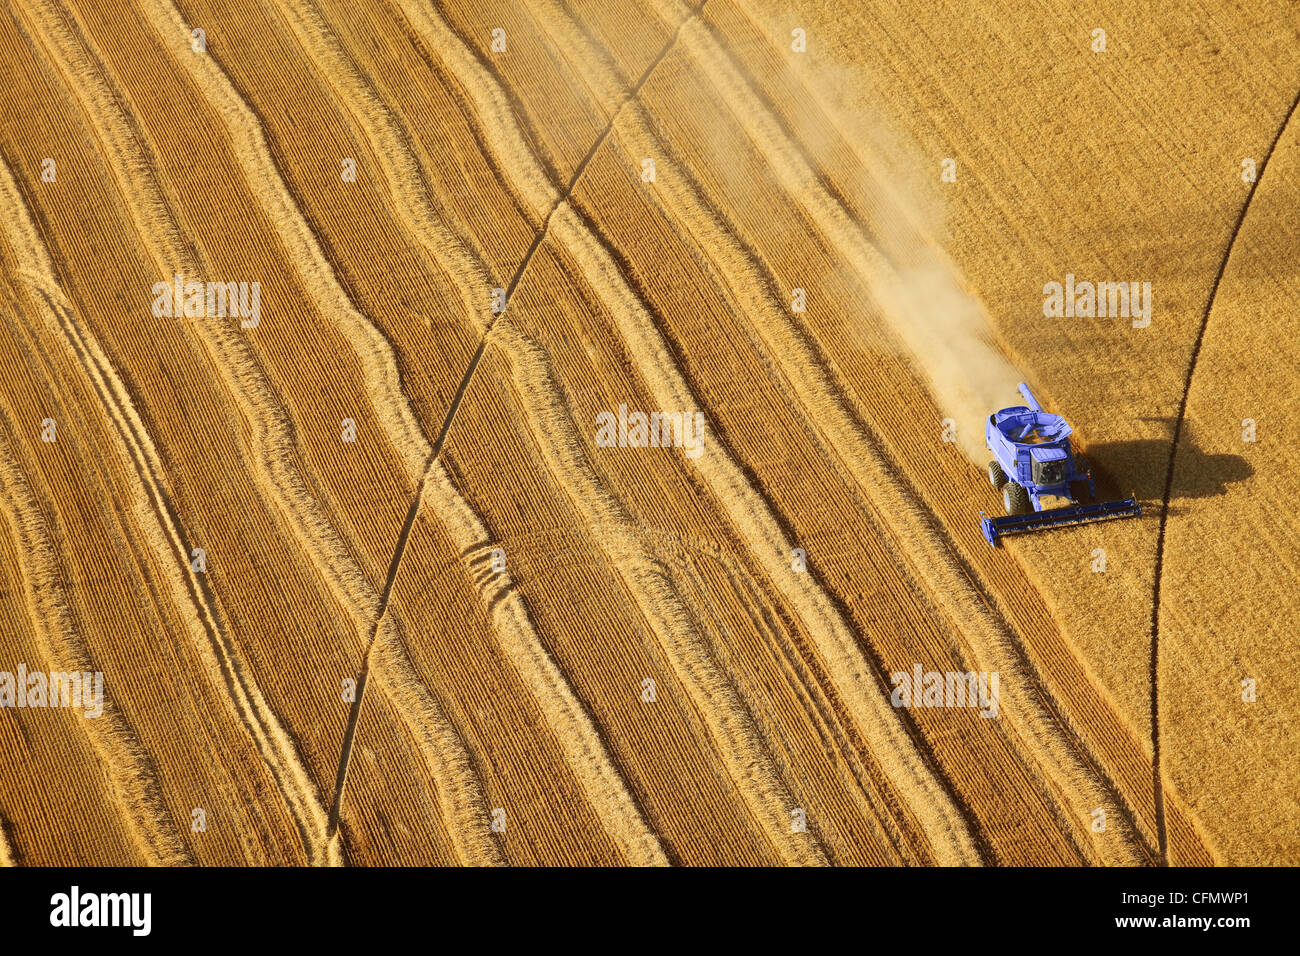 an aerial view of a wheat field being harvested - Stock Image